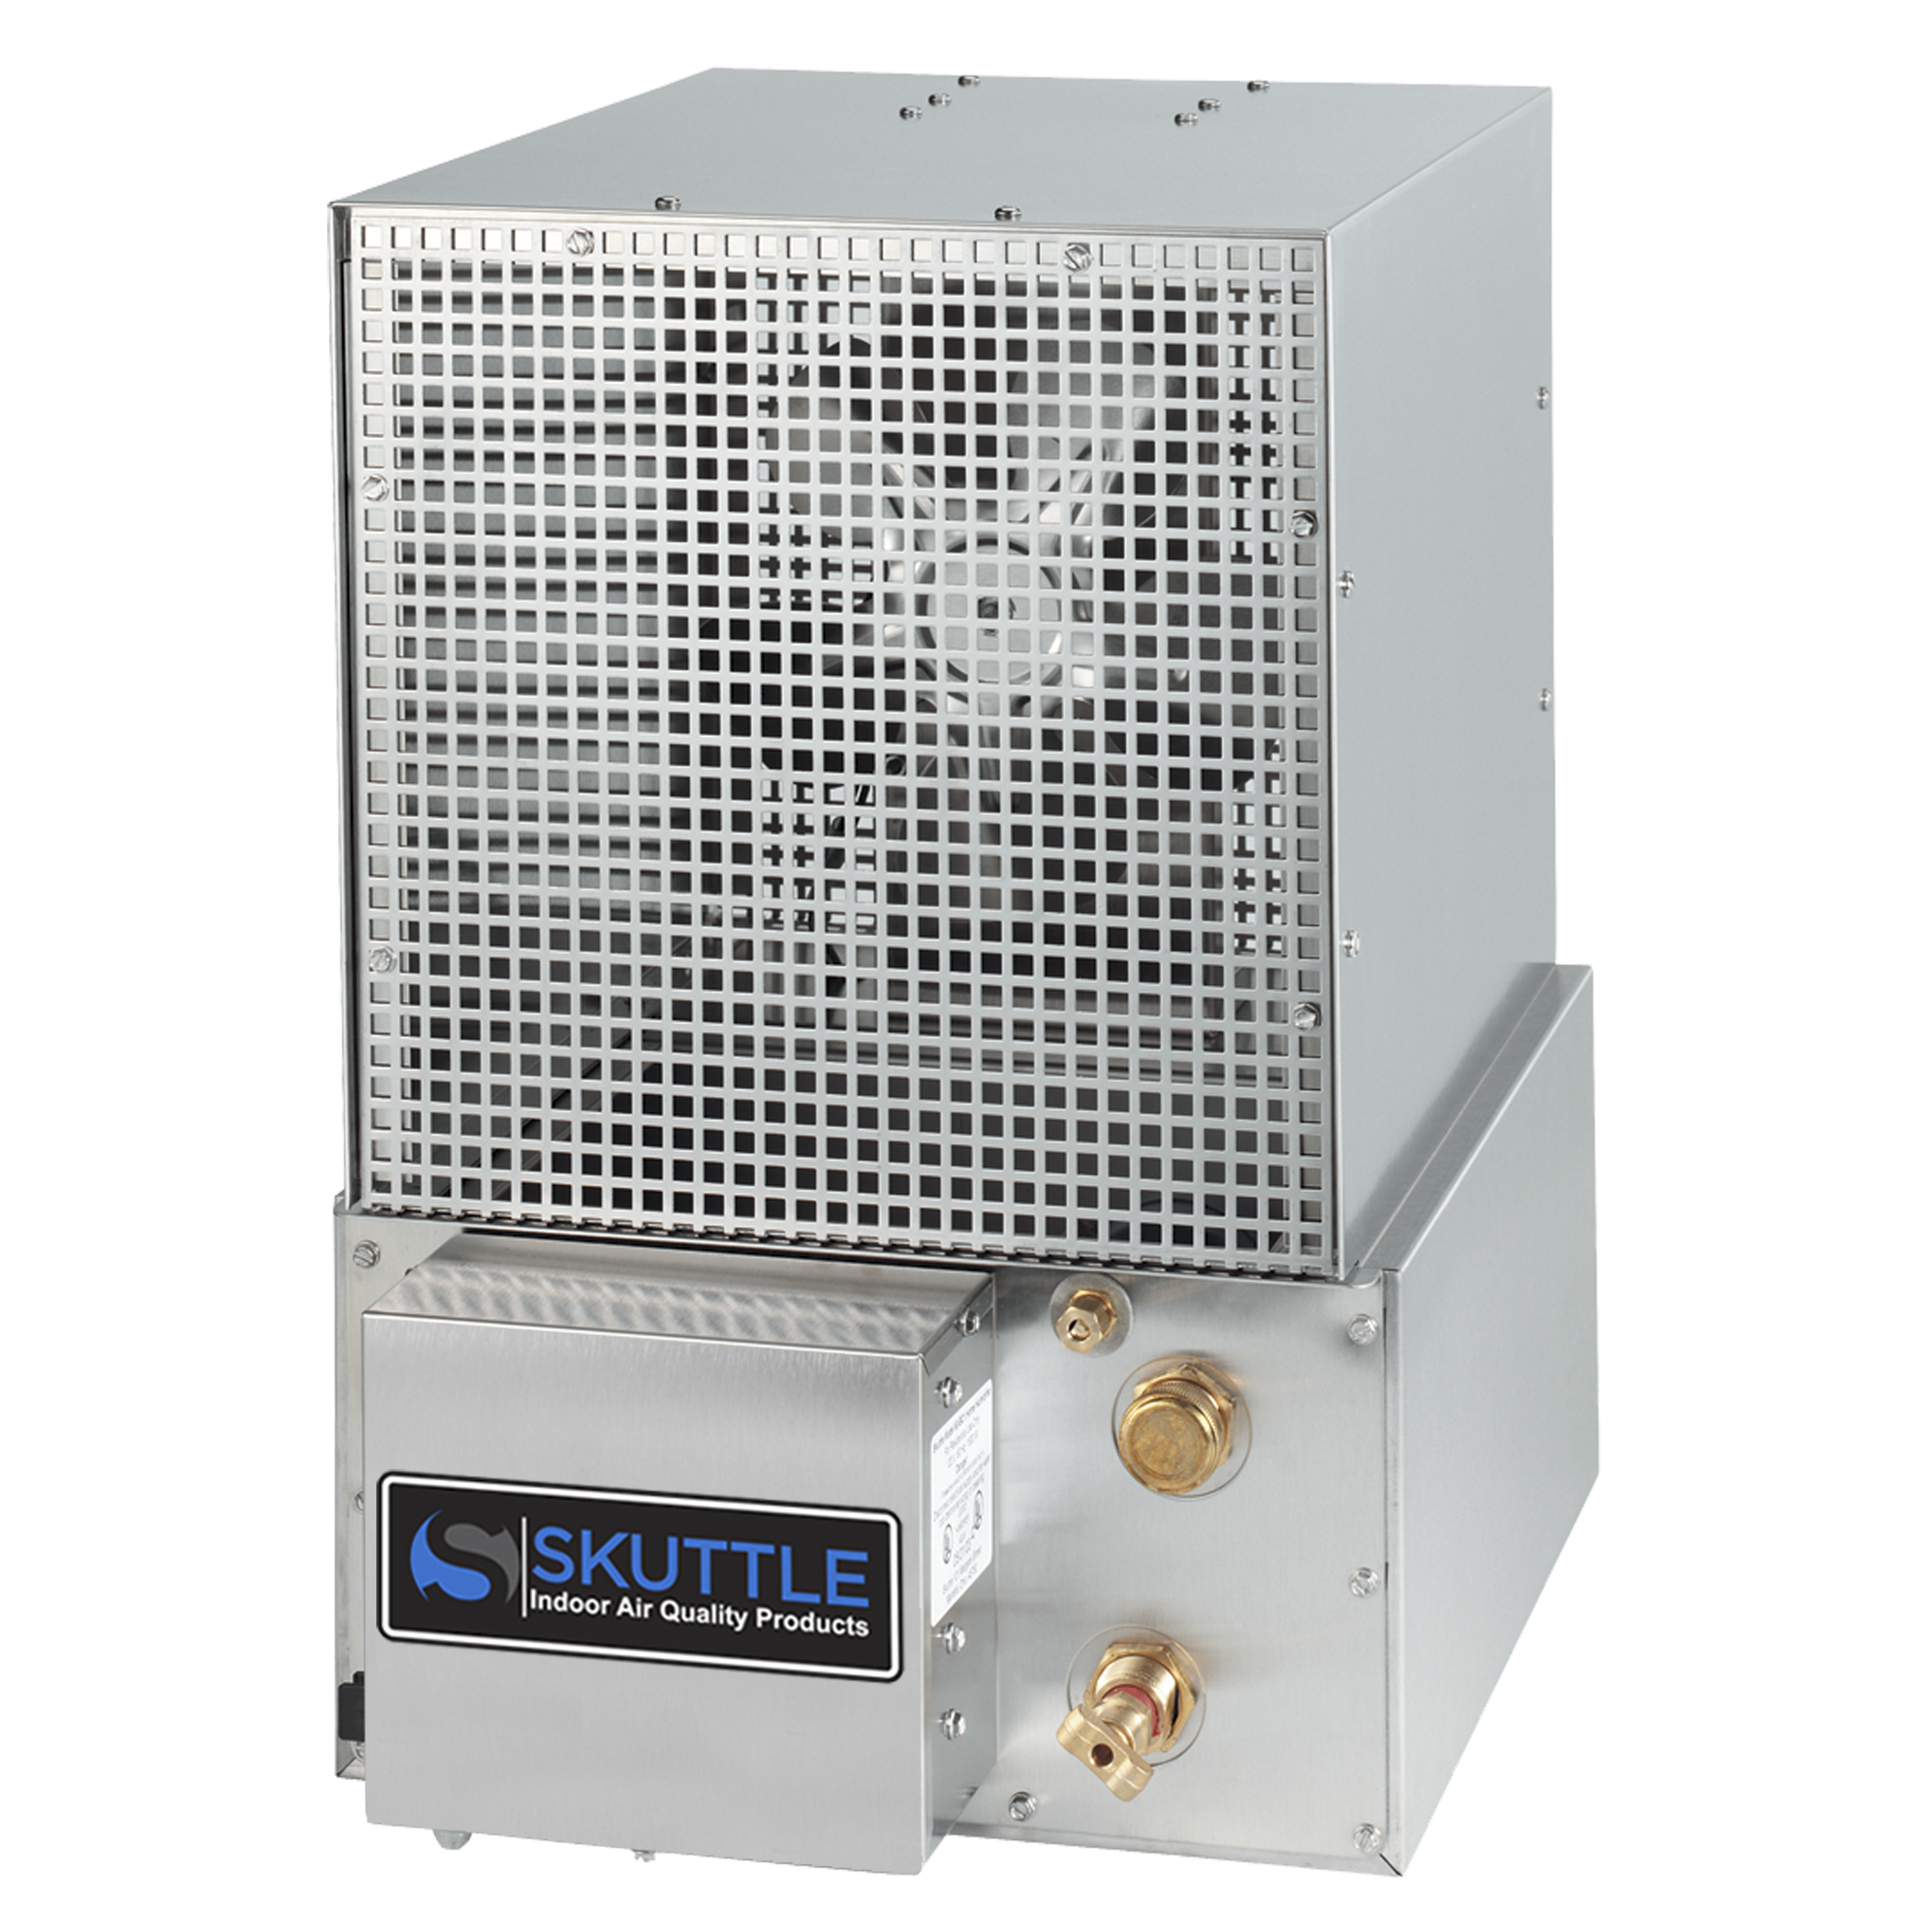 Steam Humidifiers Skuttle Hvac Duct Drawing Free Images Model 60 Bc1 Standing High Capacity Humidifier For Use When No Ductwork Is Available